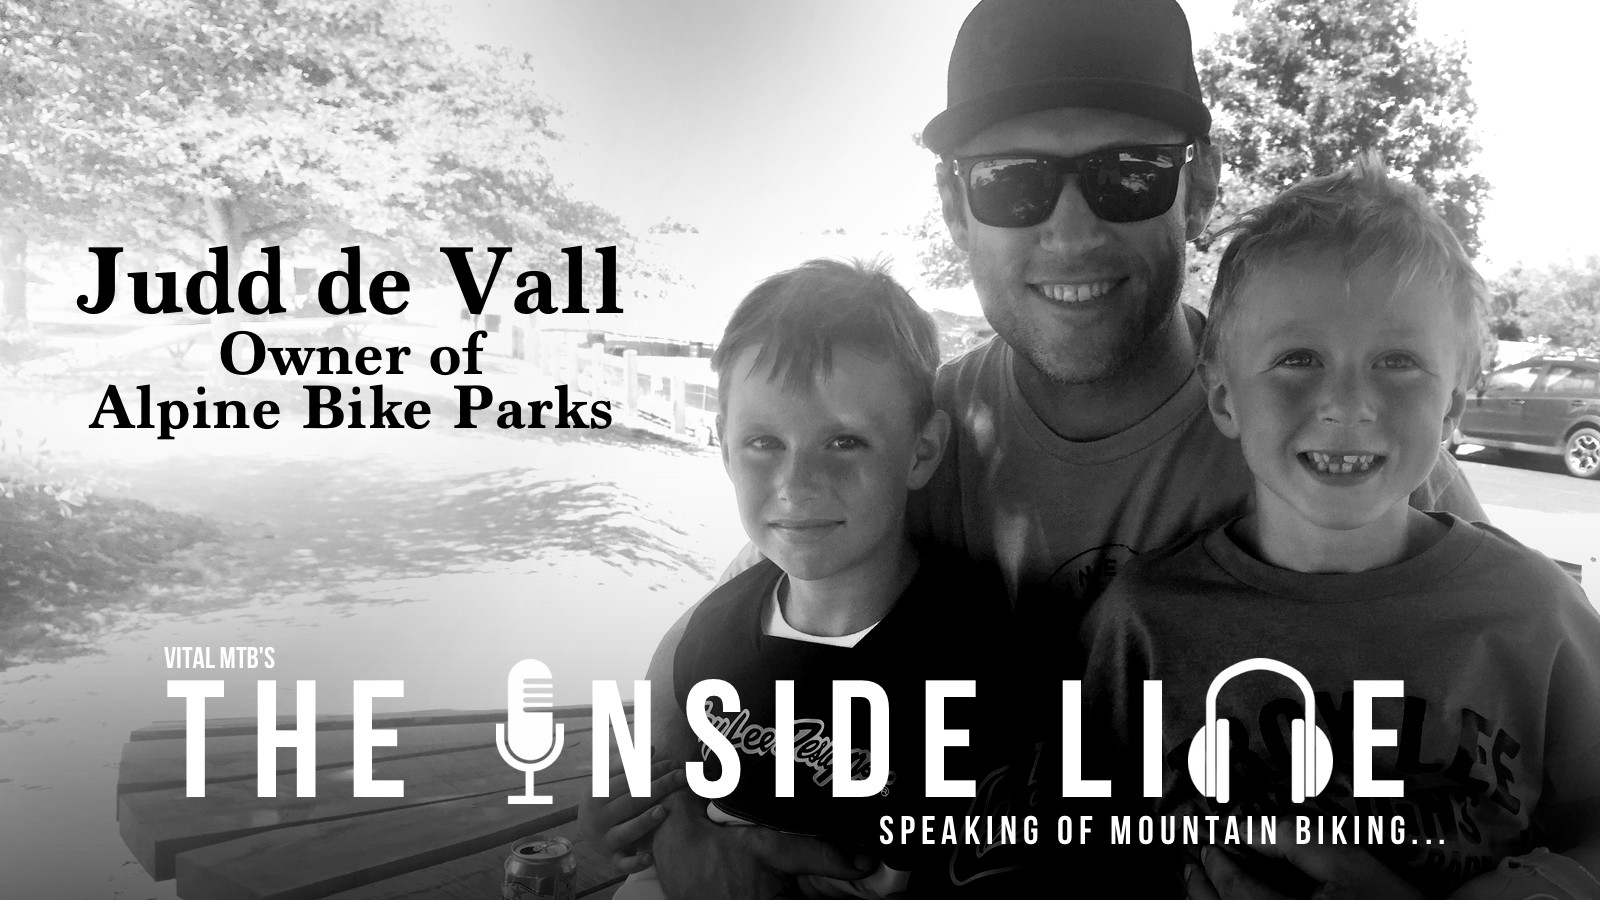 The Inside Line Podcast - Judd de Vall, Owner of Alpine Bike Parks